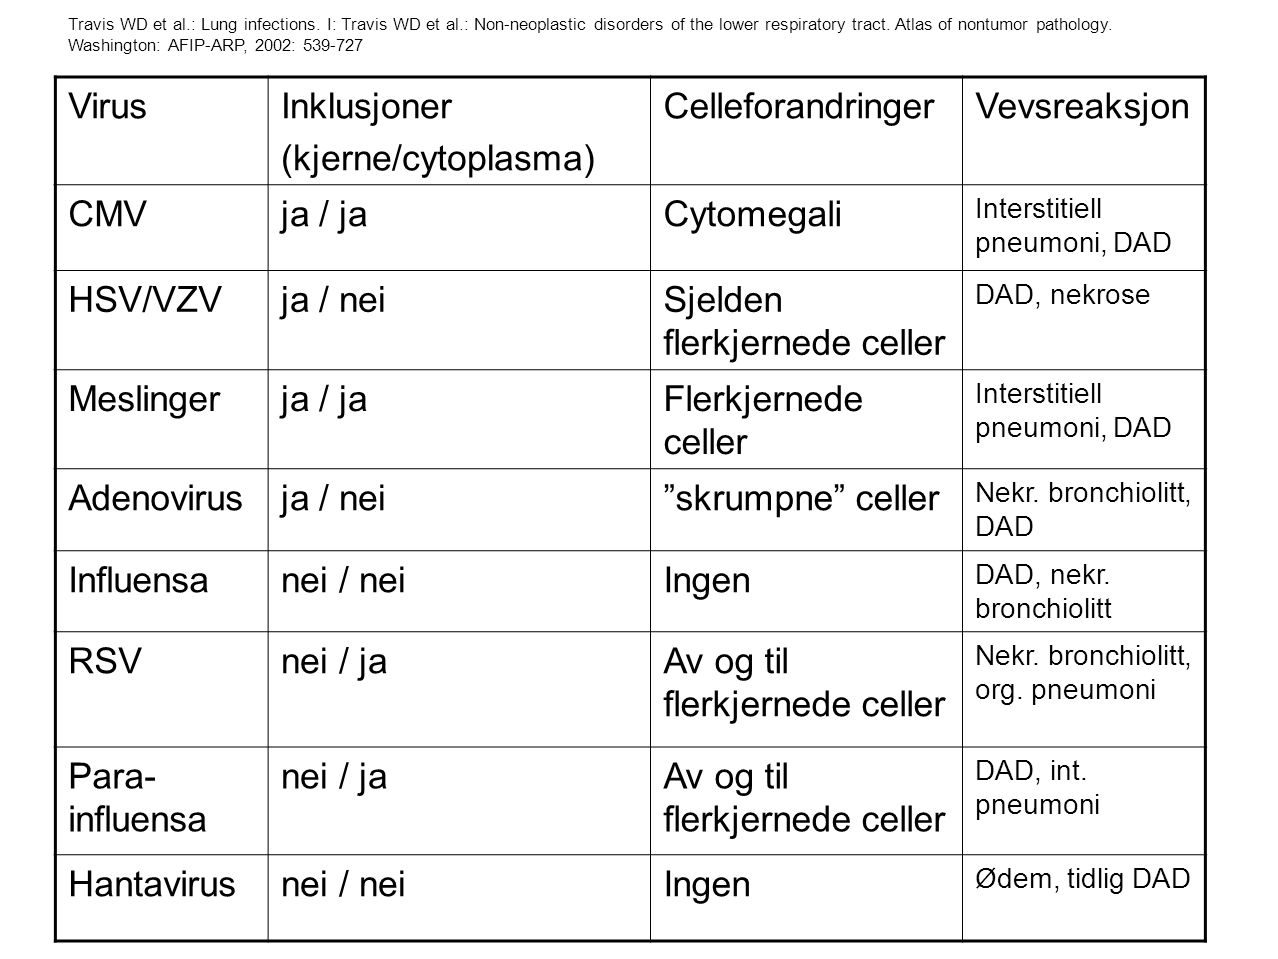 VirusInklusjoner (kjerne/cytoplasma) CelleforandringerVevsreaksjon CMVja / jaCytomegali Interstitiell pneumoni, DAD HSV/VZVja / neiSjelden flerkjerned